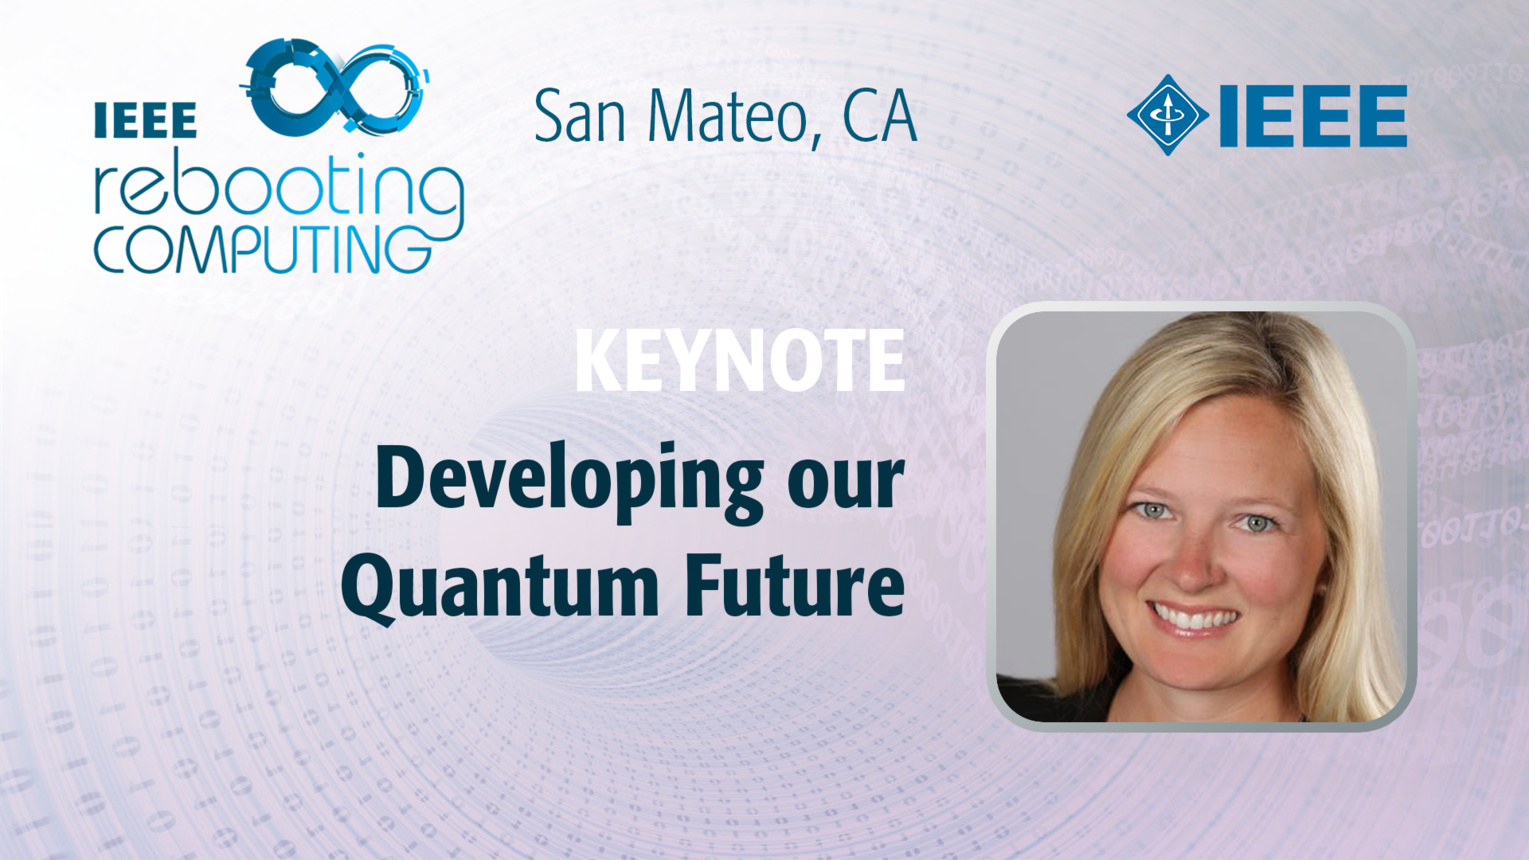 Developing Our Quantum Future - Krysta Svore Keynote - ICRC San Mateo, 2019